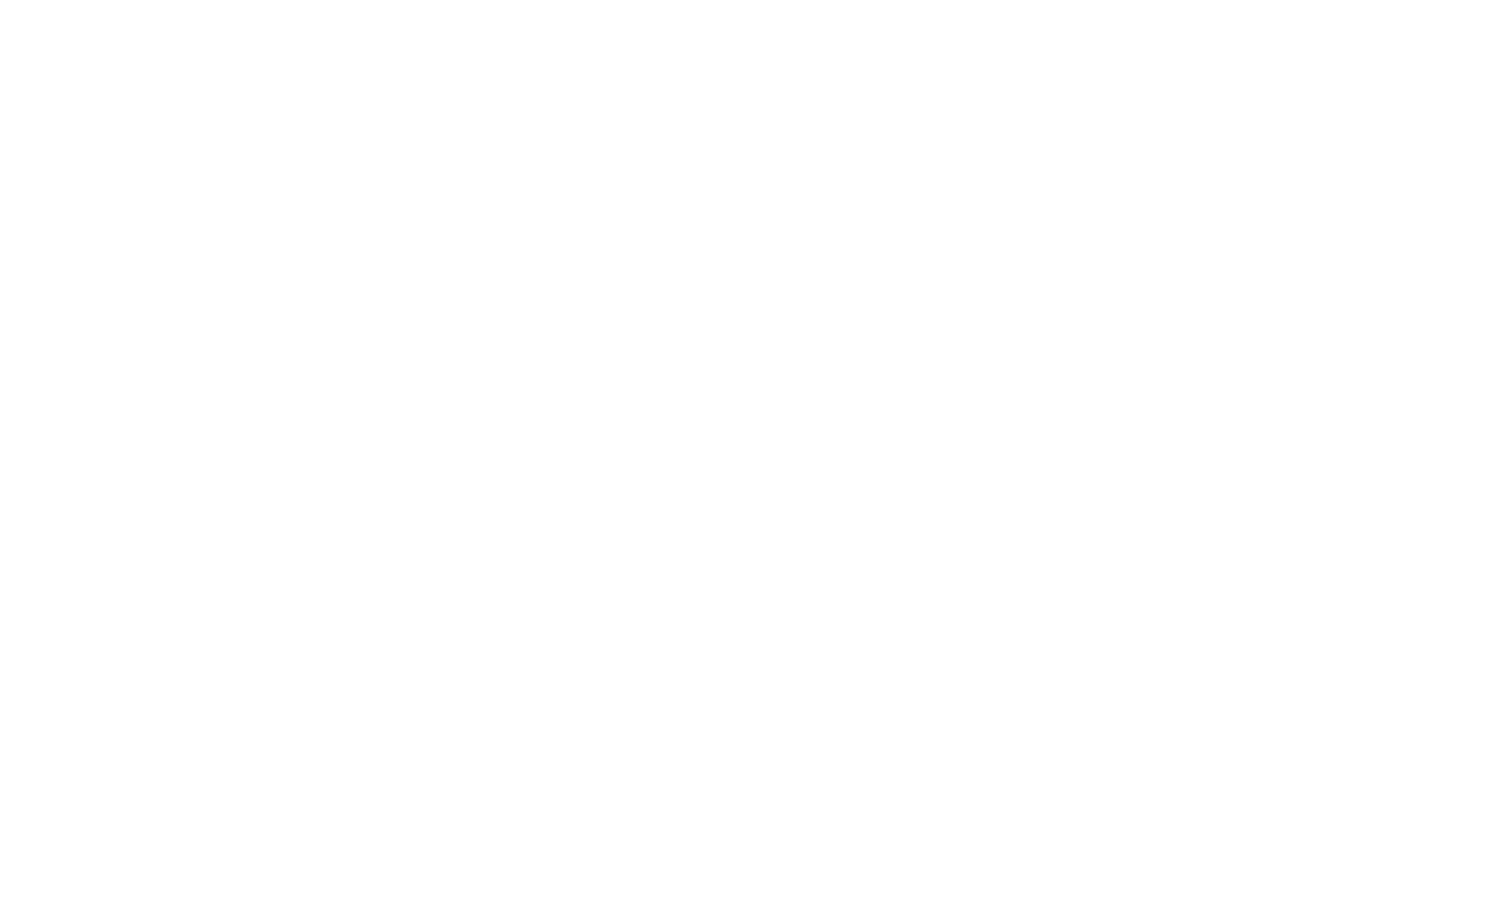 Dispersive Technologies